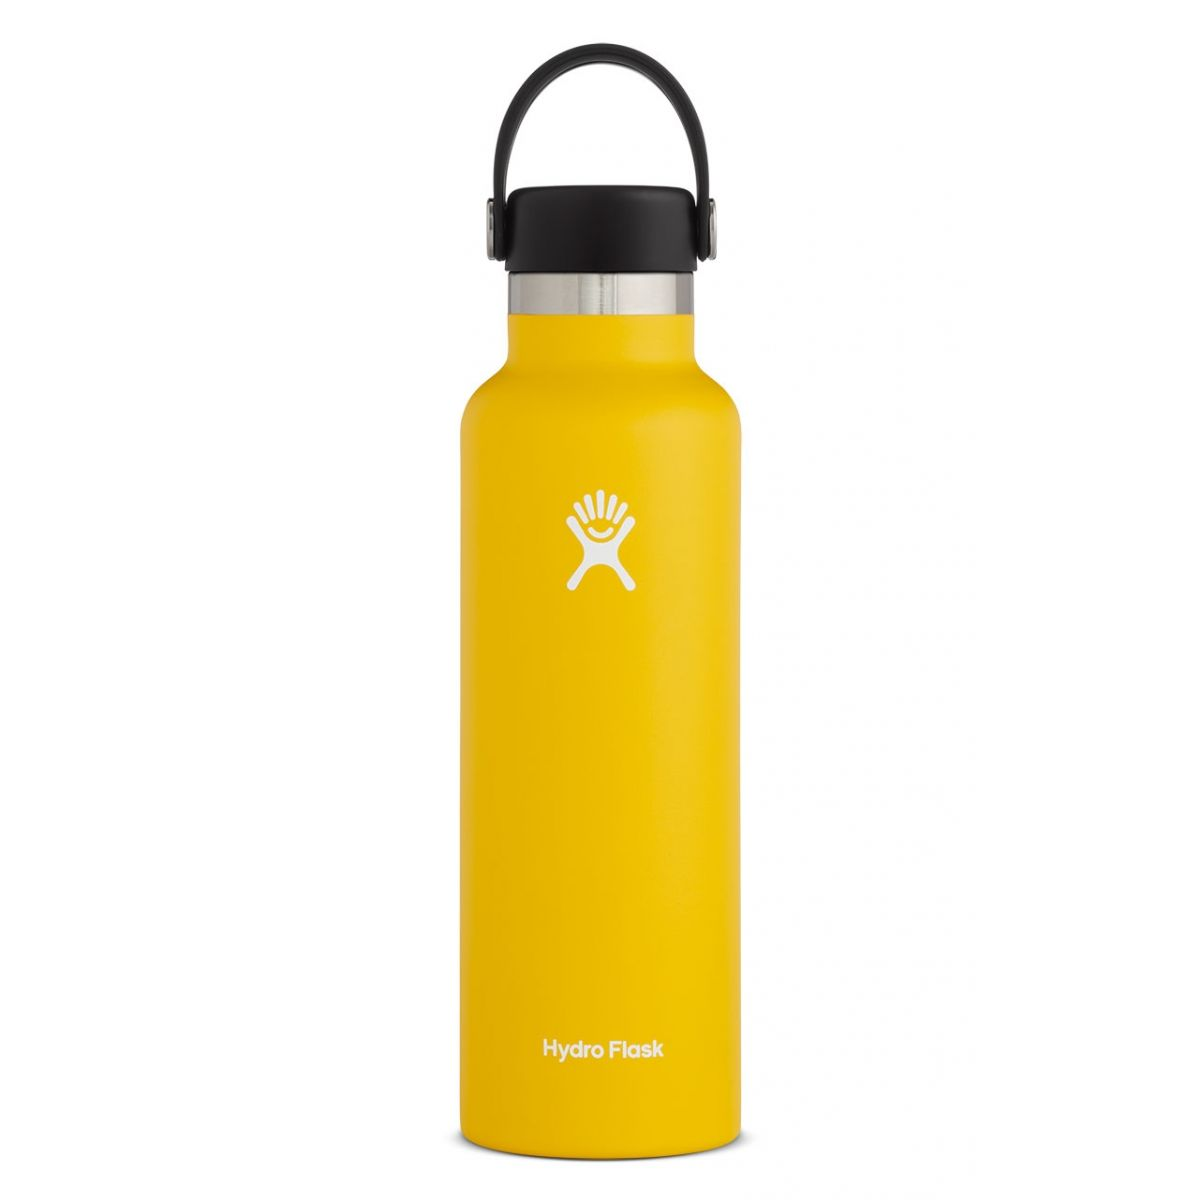 Image For Hydroflask Insulated Water Bottle, Sunflower